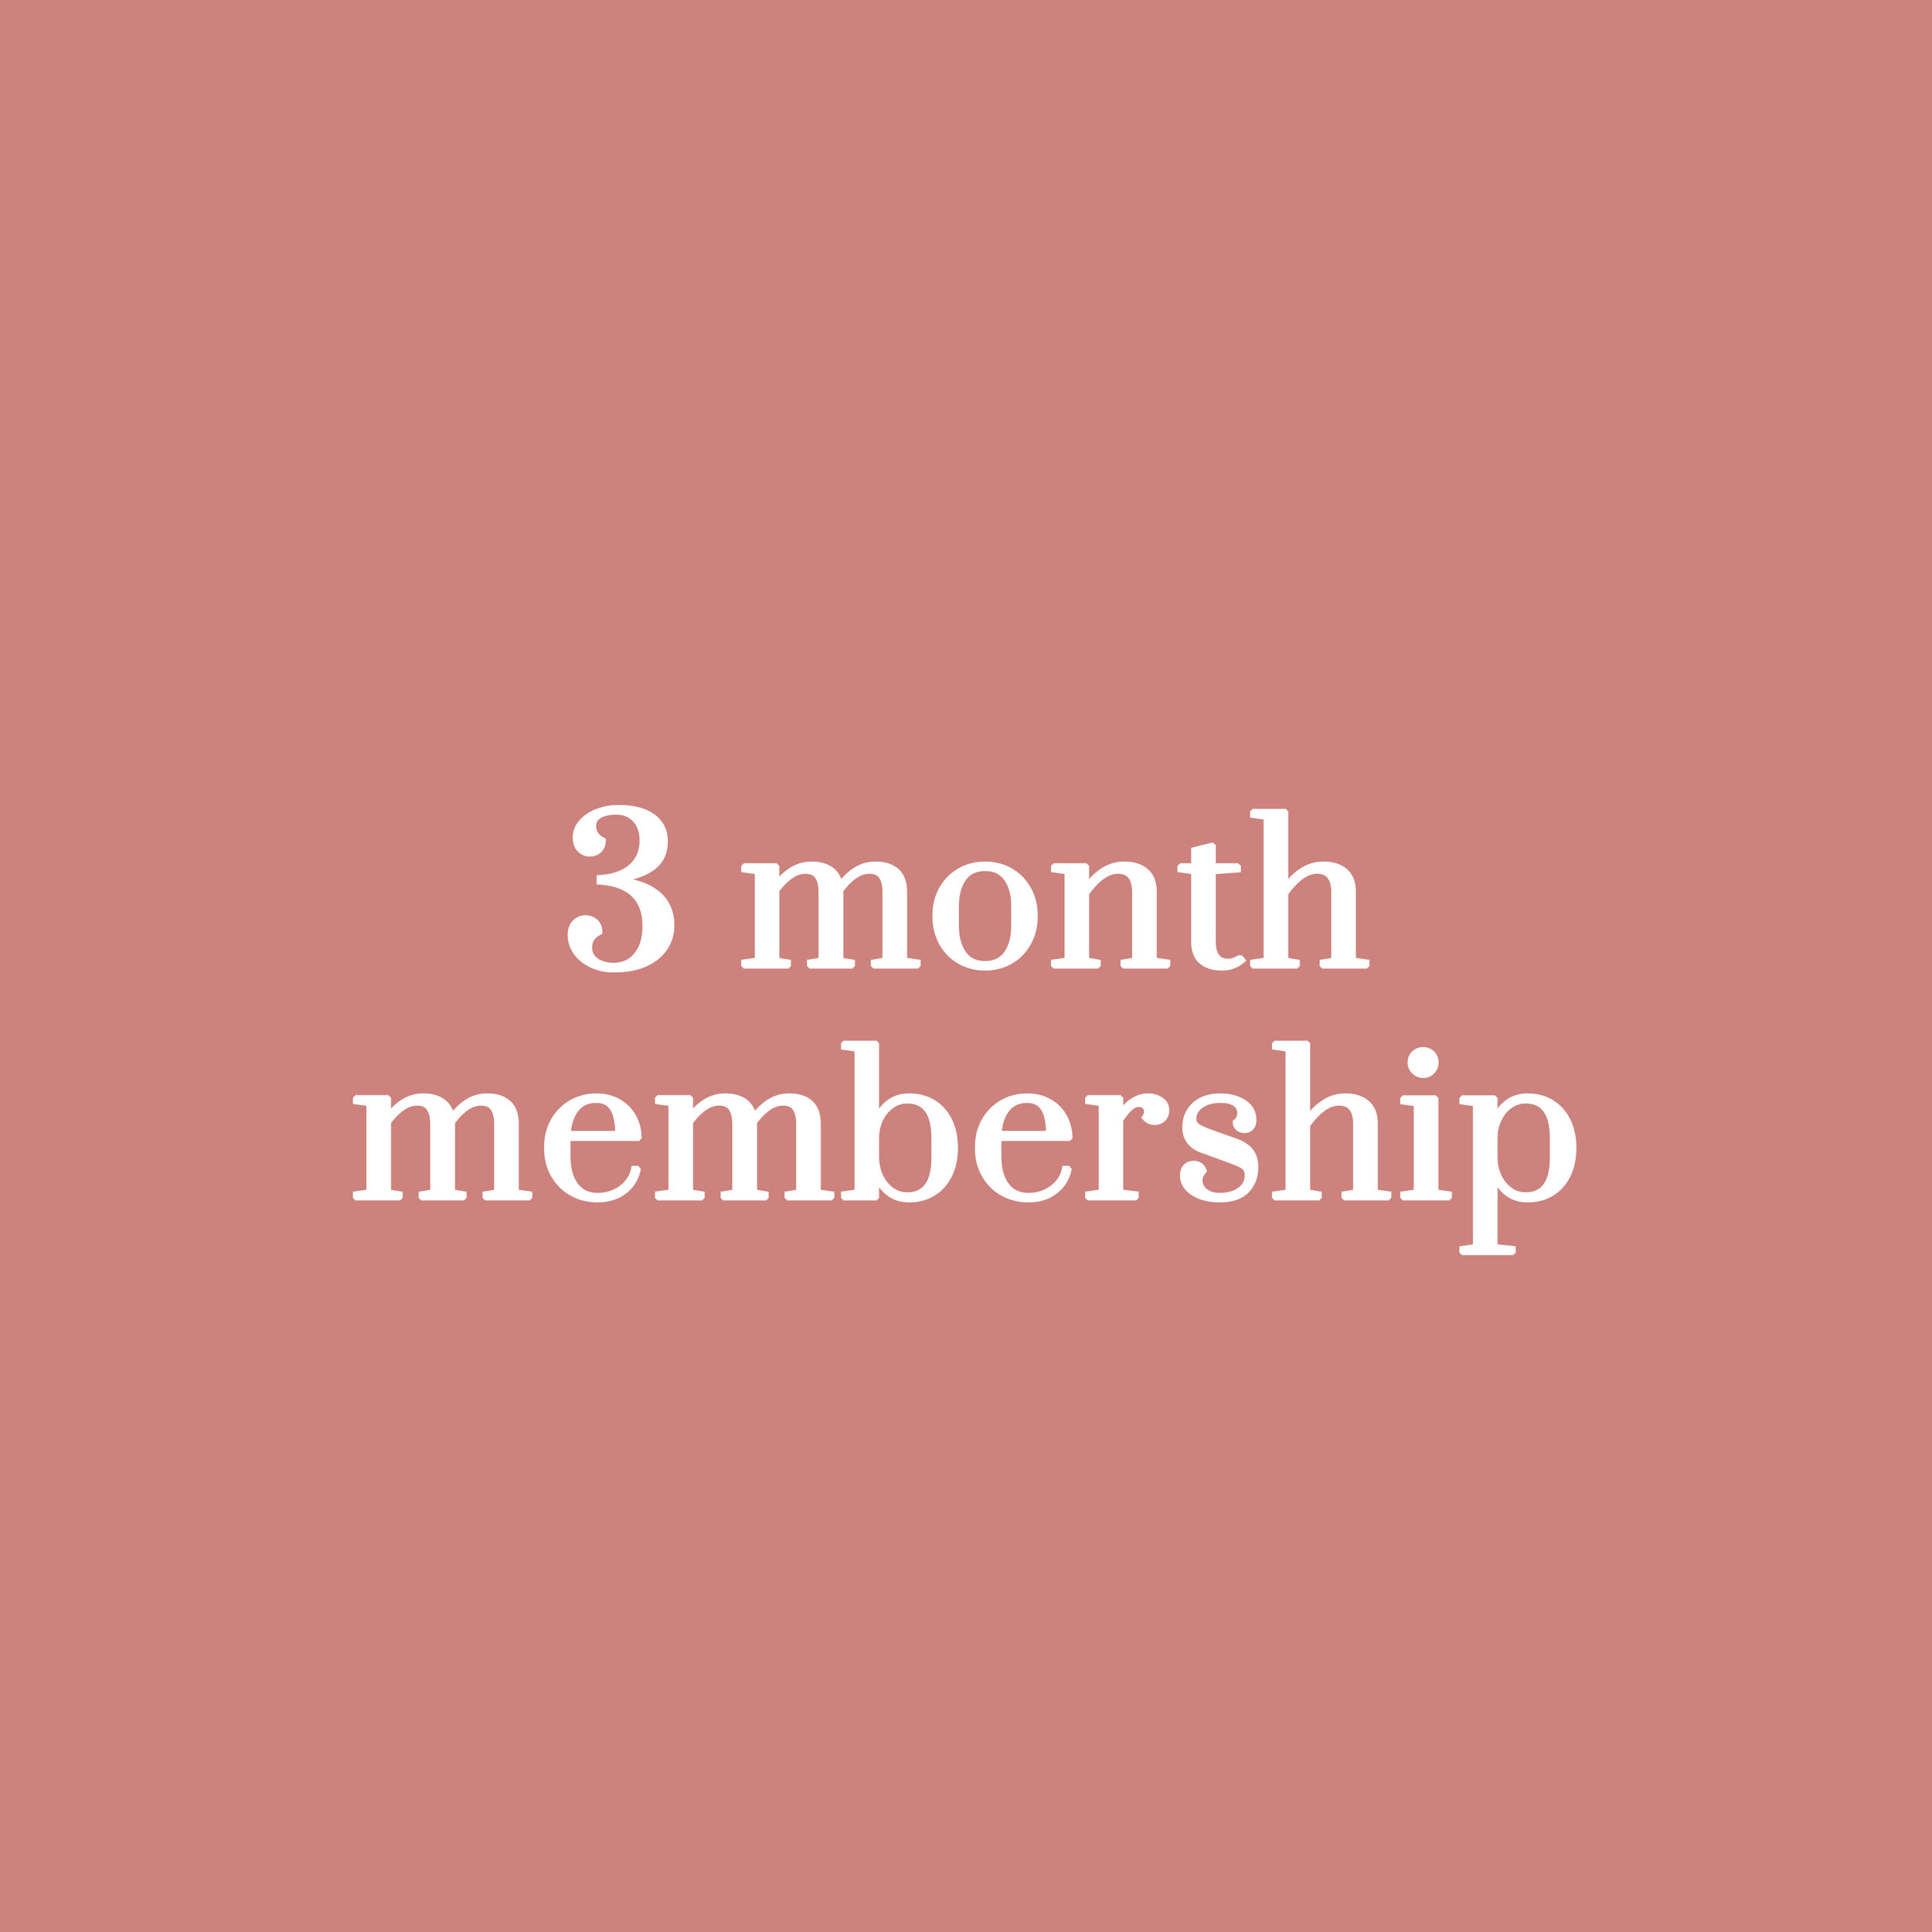 RM 1,250 - (approx. USD 300) for a 3-month membership (equals to RM416.67 per month)